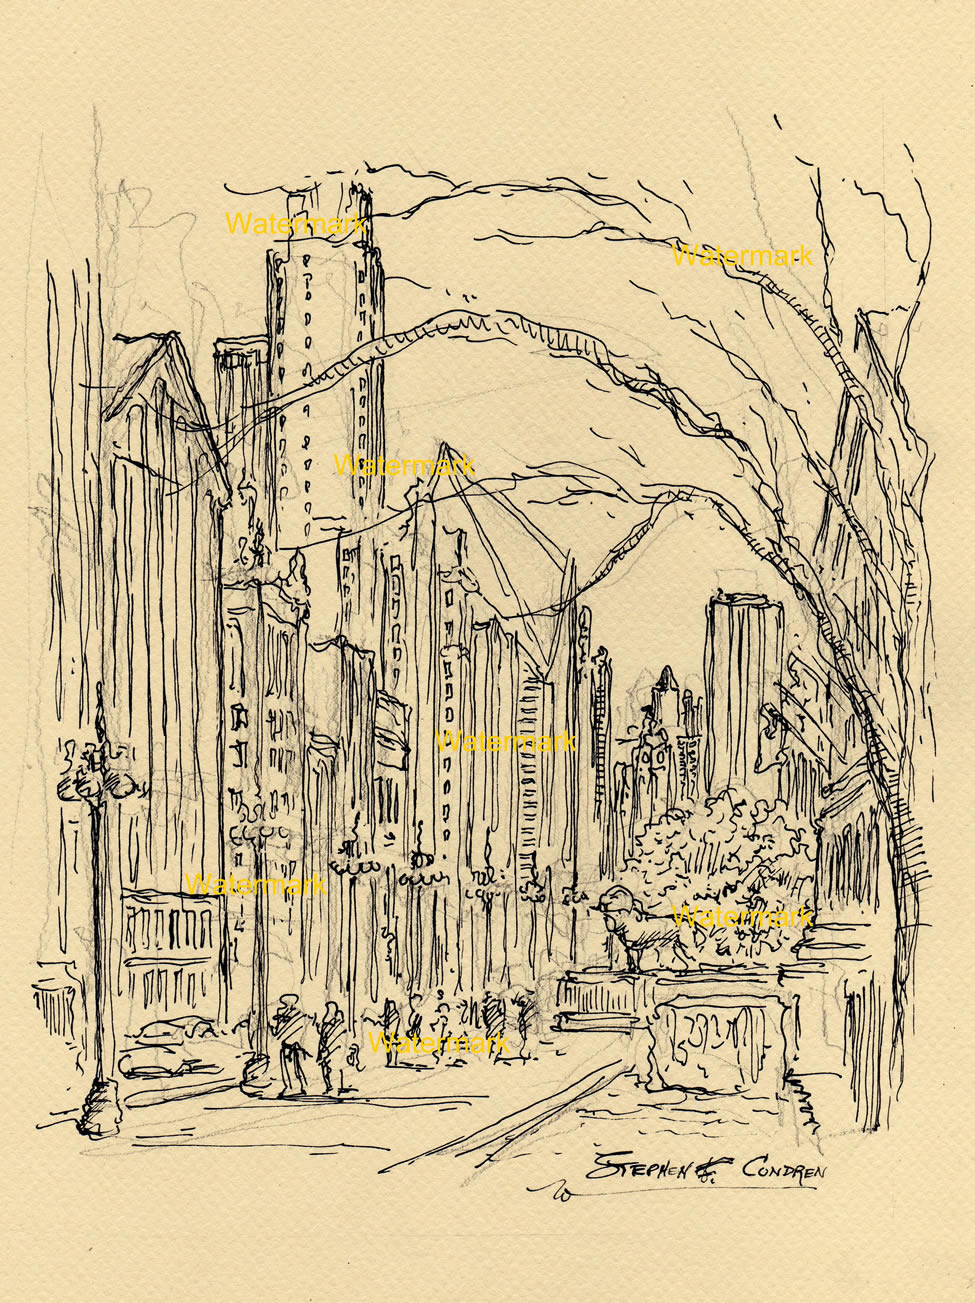 Downtown Chicago Michigan Avenue pen & ink drawing.